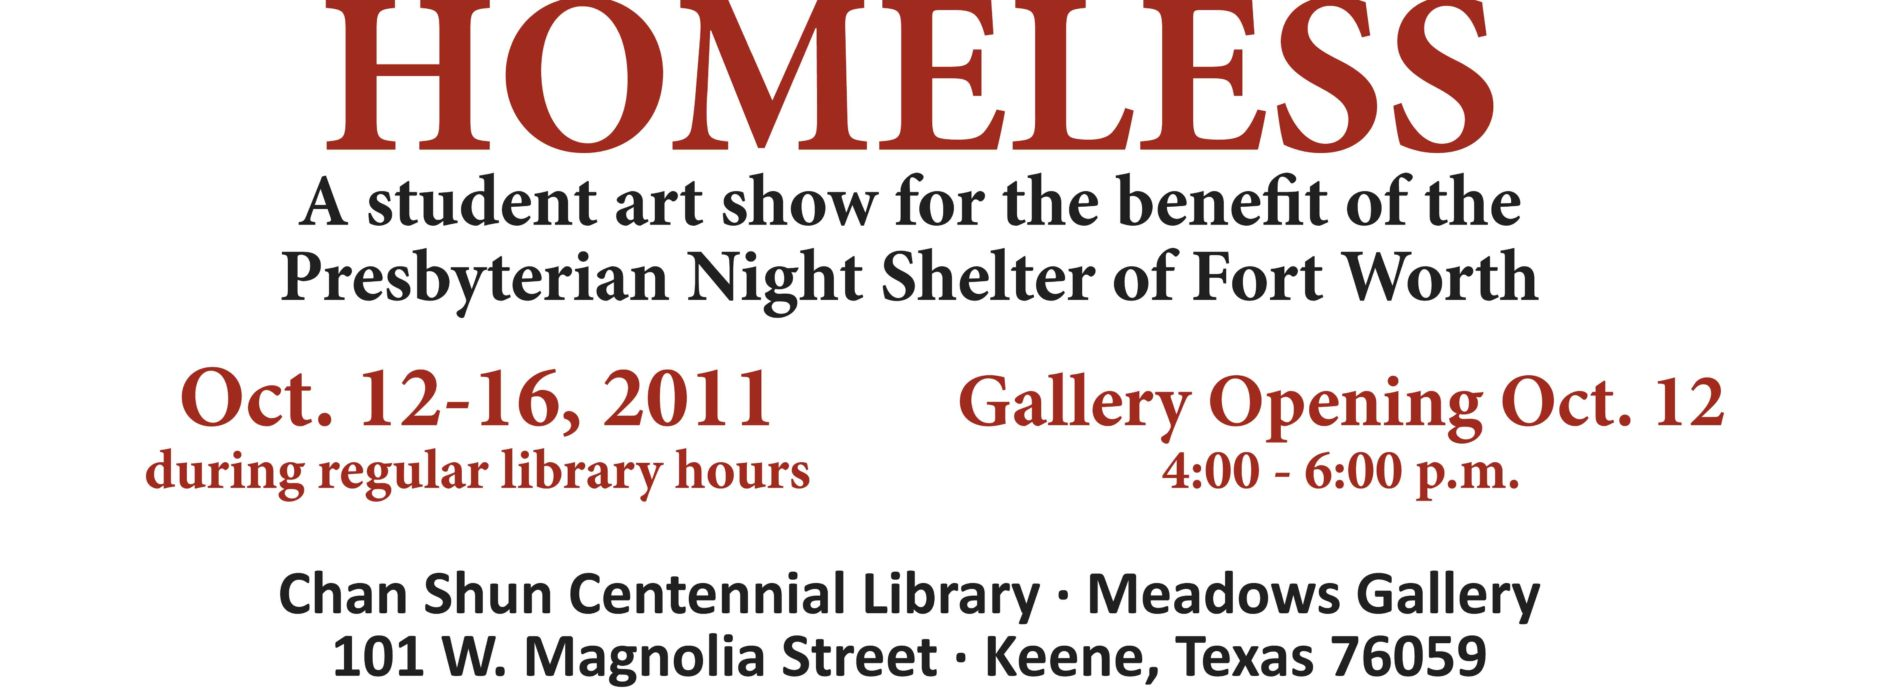 Homeless Art Show Scheduled for Oct. 12